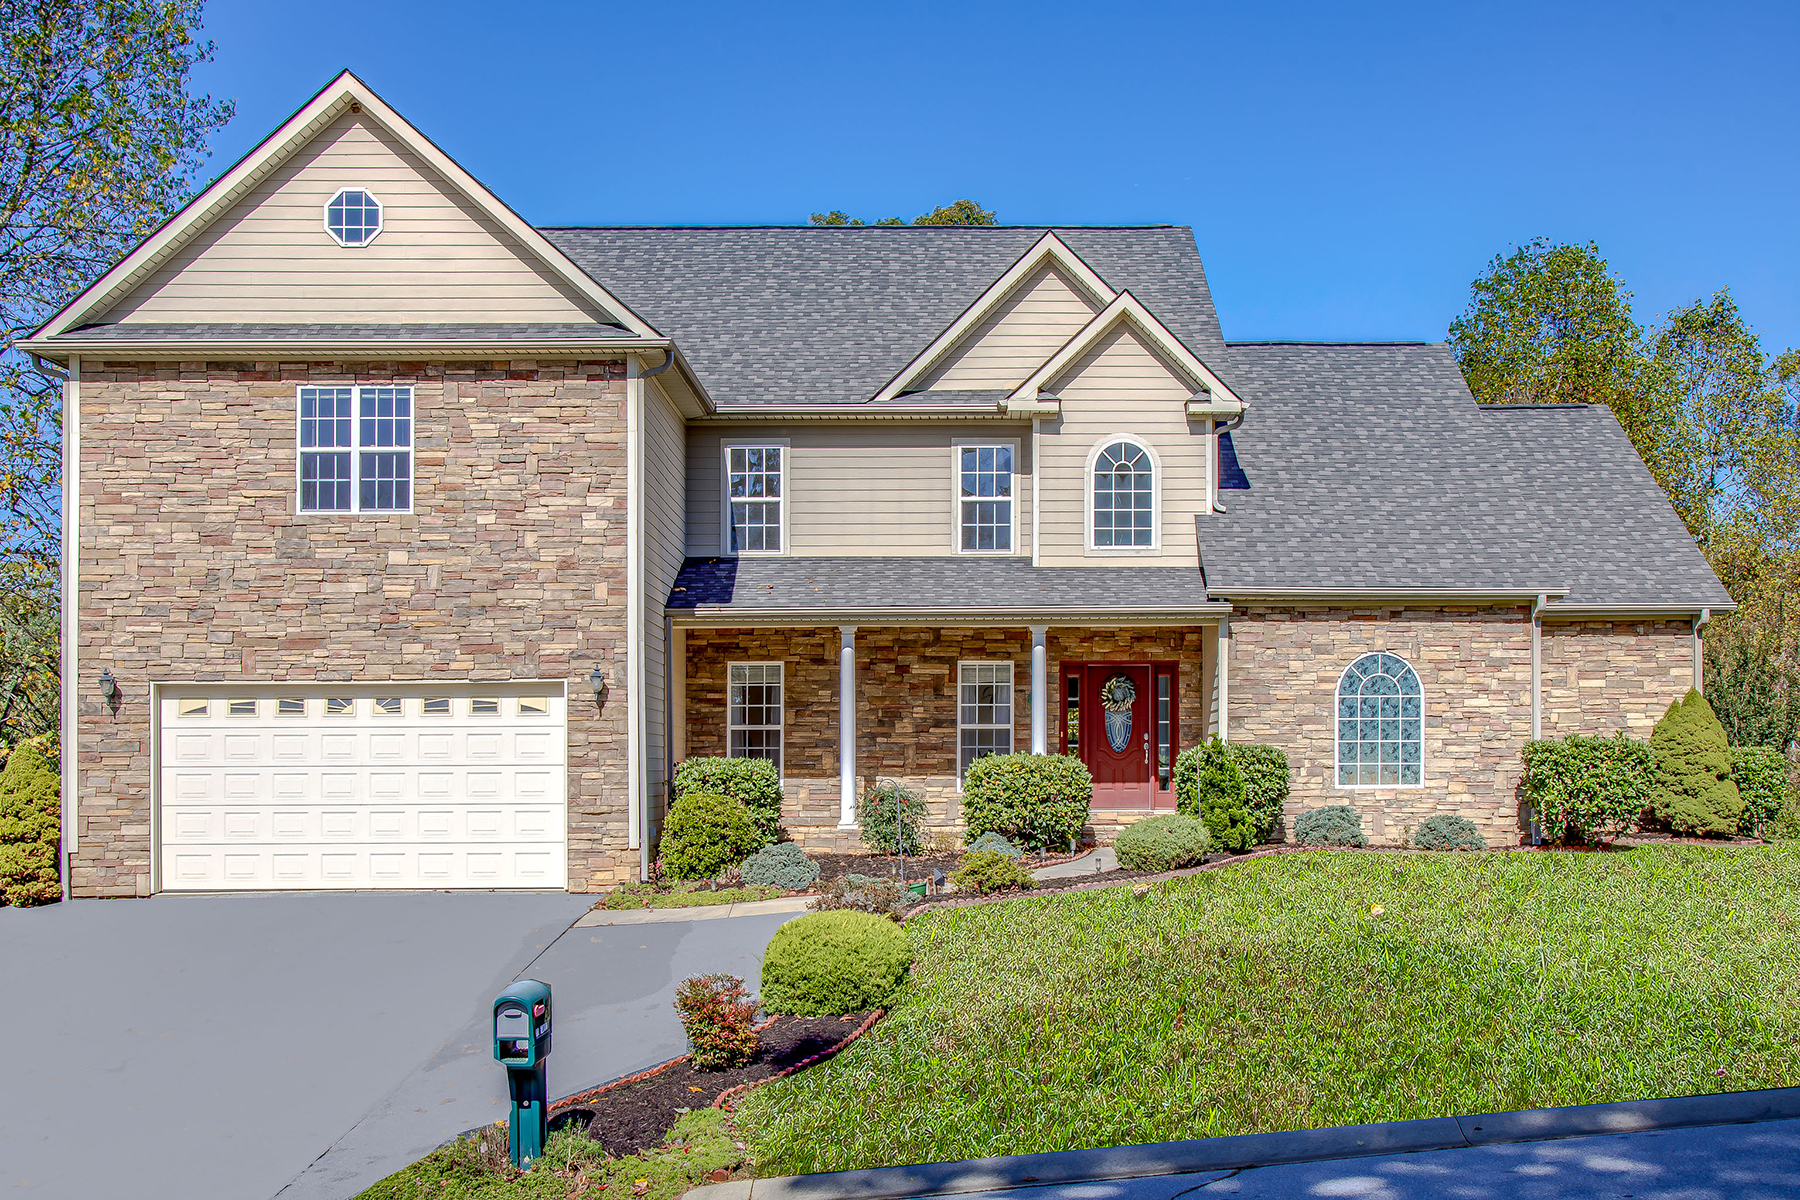 Single Family Homes for Sale at 34 Drakes Meadow Ln Arden, North Carolina 28704 United States